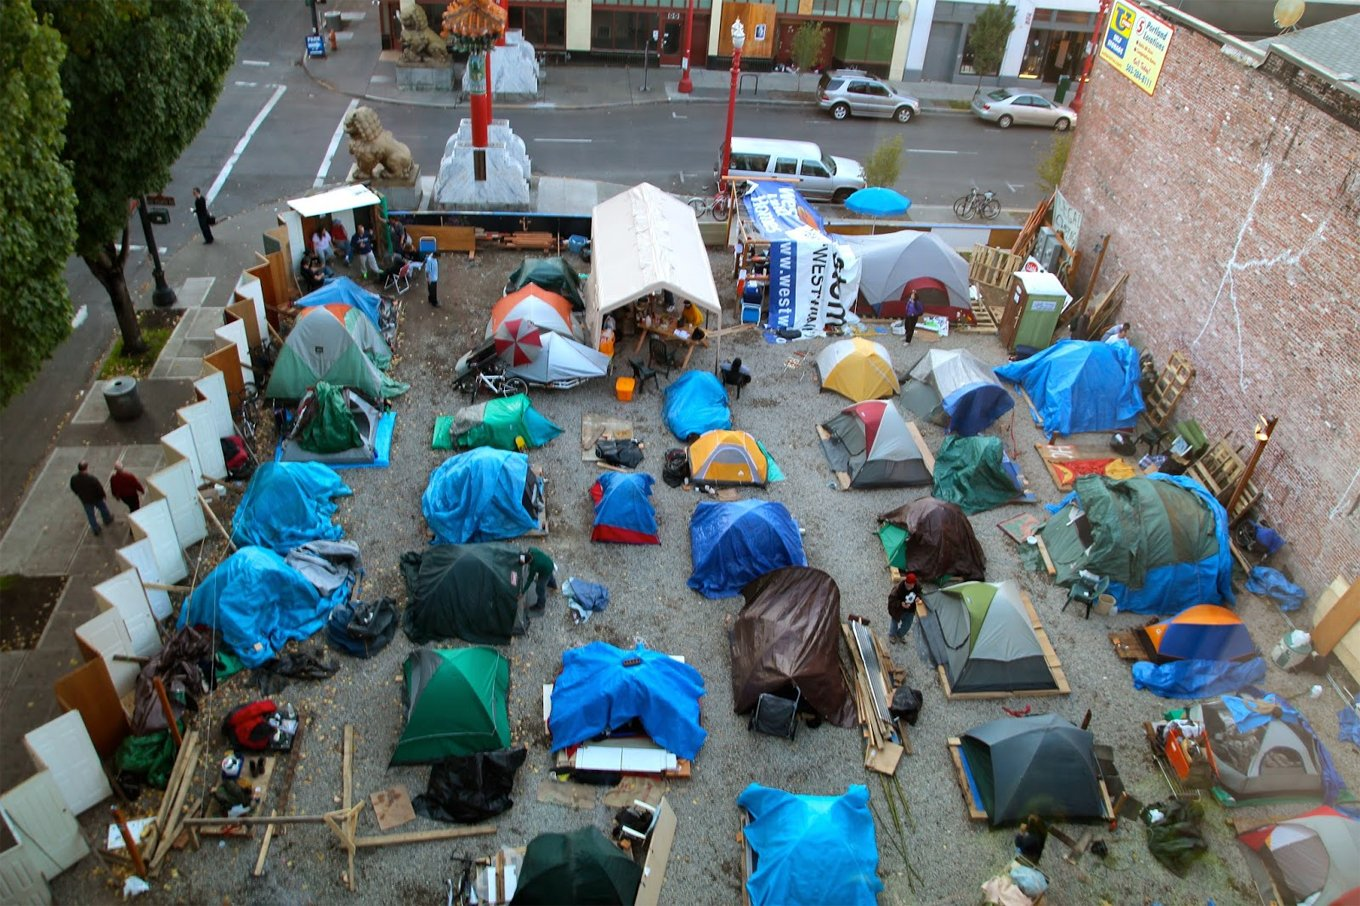 Informal community Right 2 Dream Too Portland Oregon. [Street Roots] & Tent City America